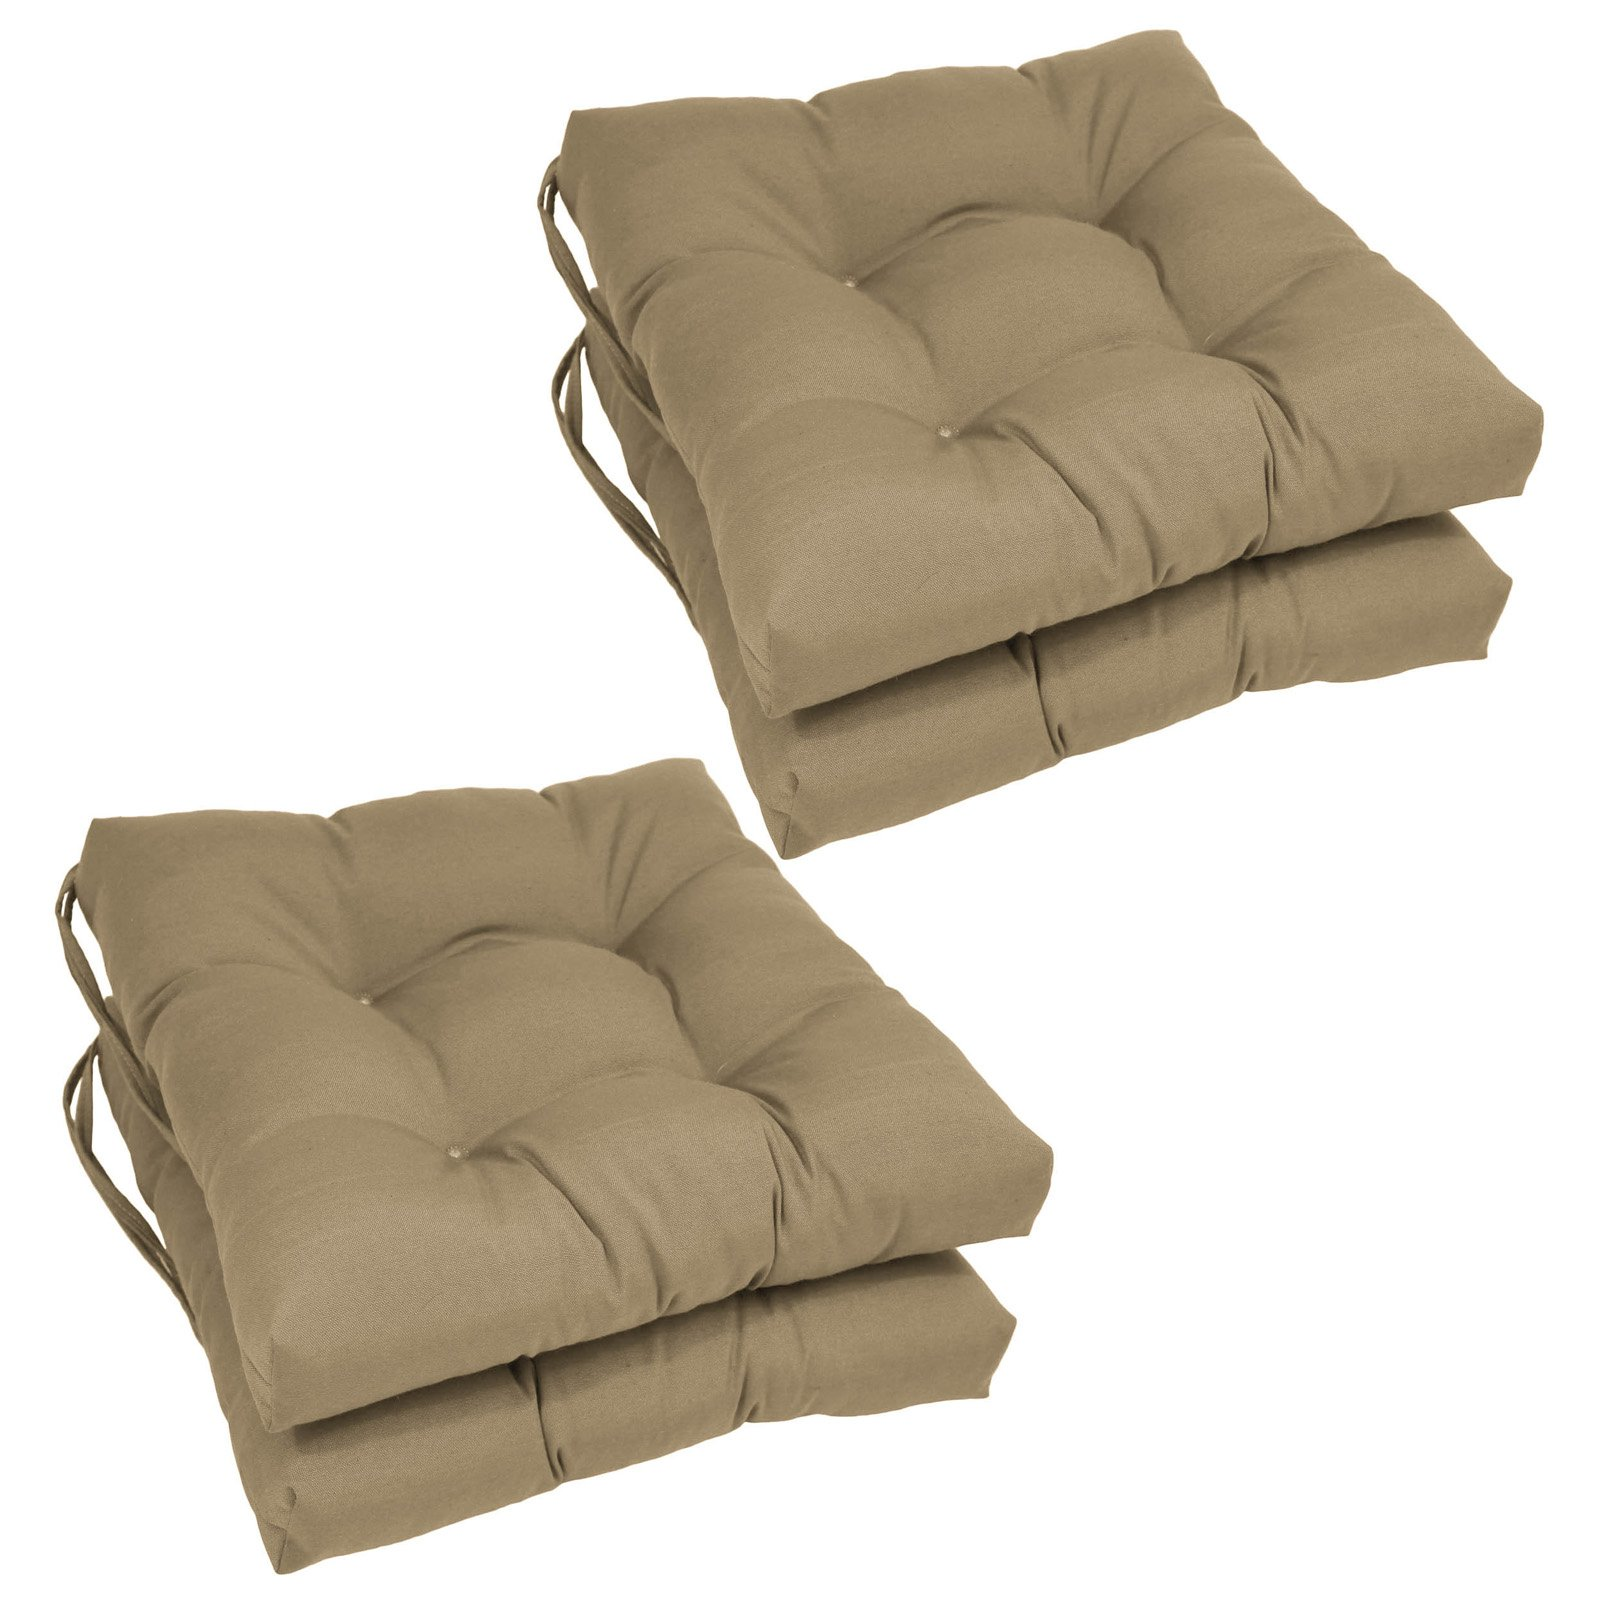 Blazing Needles Square 16 x 16 in. Twill Dining Chair Cushions - Set of 4